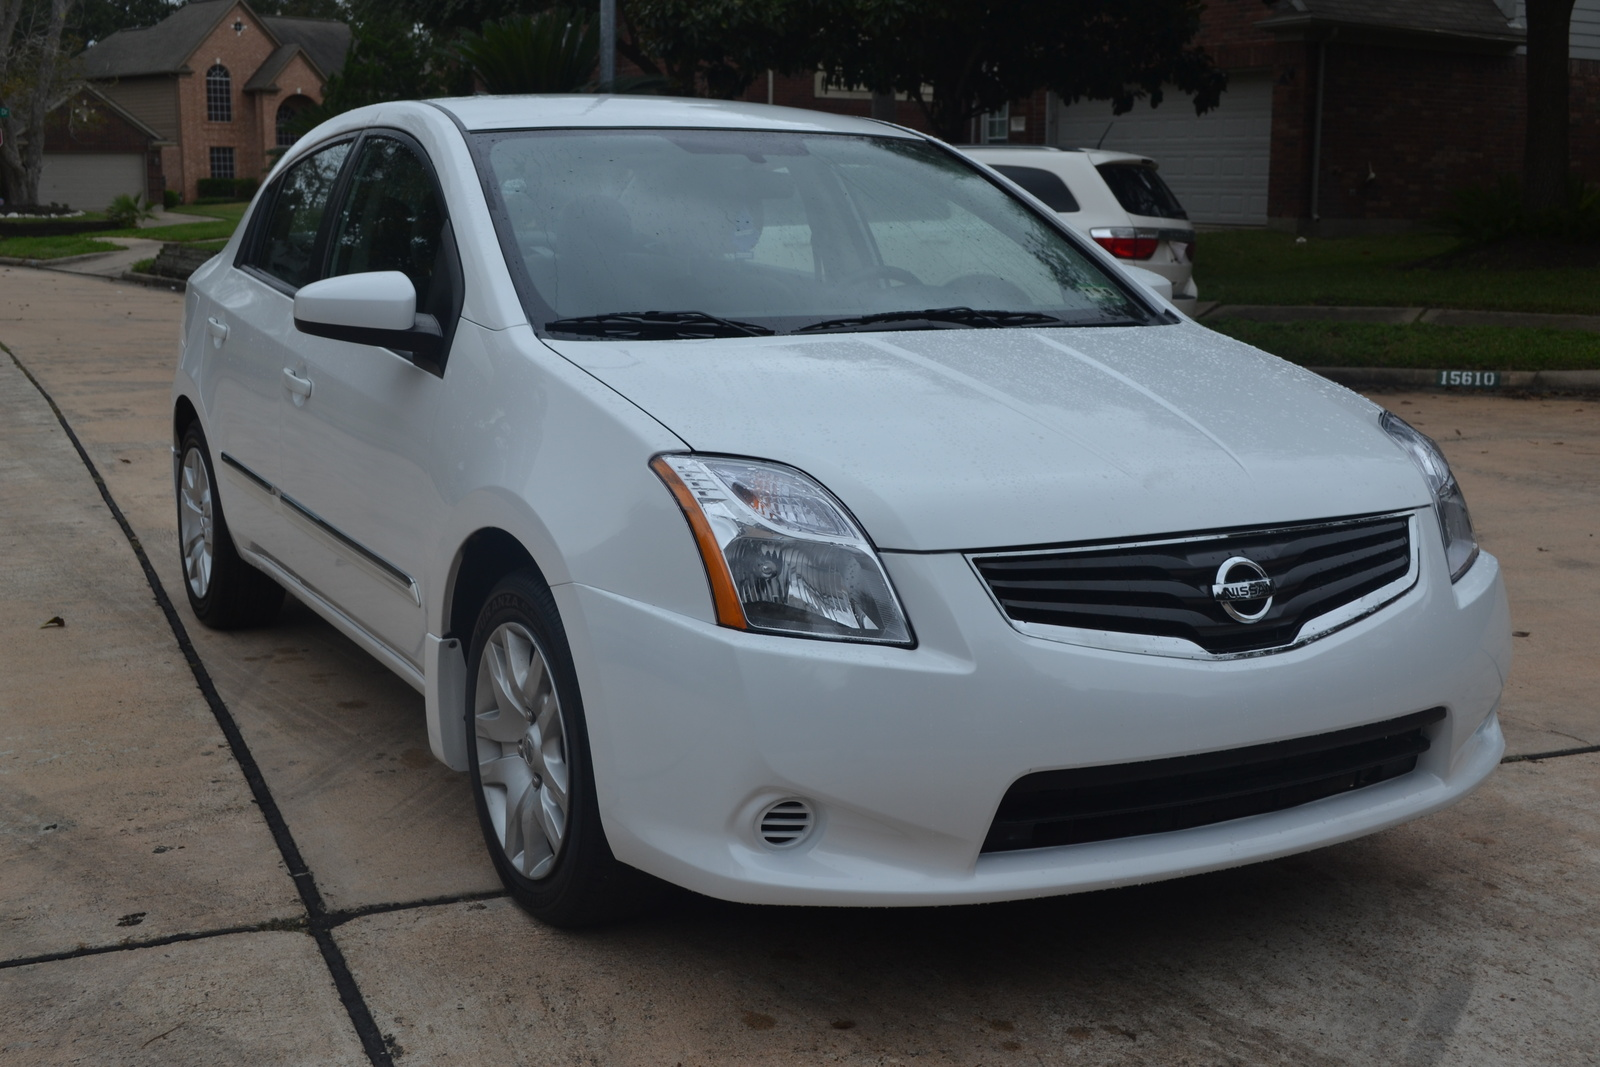 Cars For Sale For Sale In Houston Tx Page 2 Cargurus: Used Nissan Sentra For Sale Houston, TX